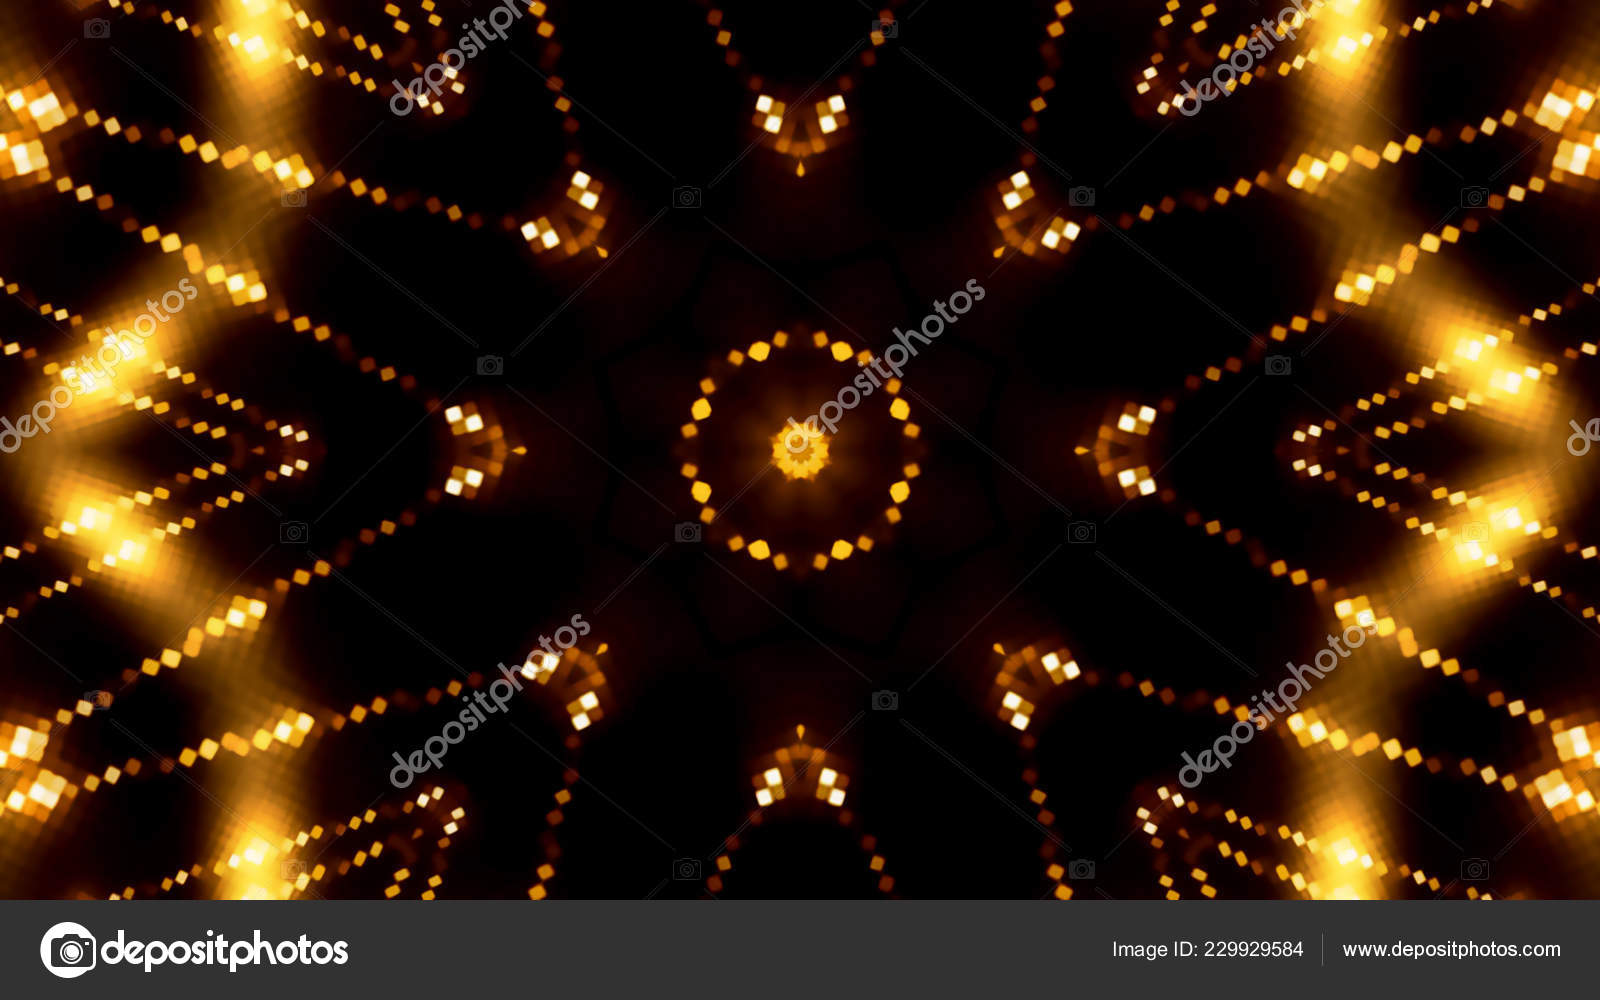 Abstract Club Lights Background Stock Photo C Catsence 229929584